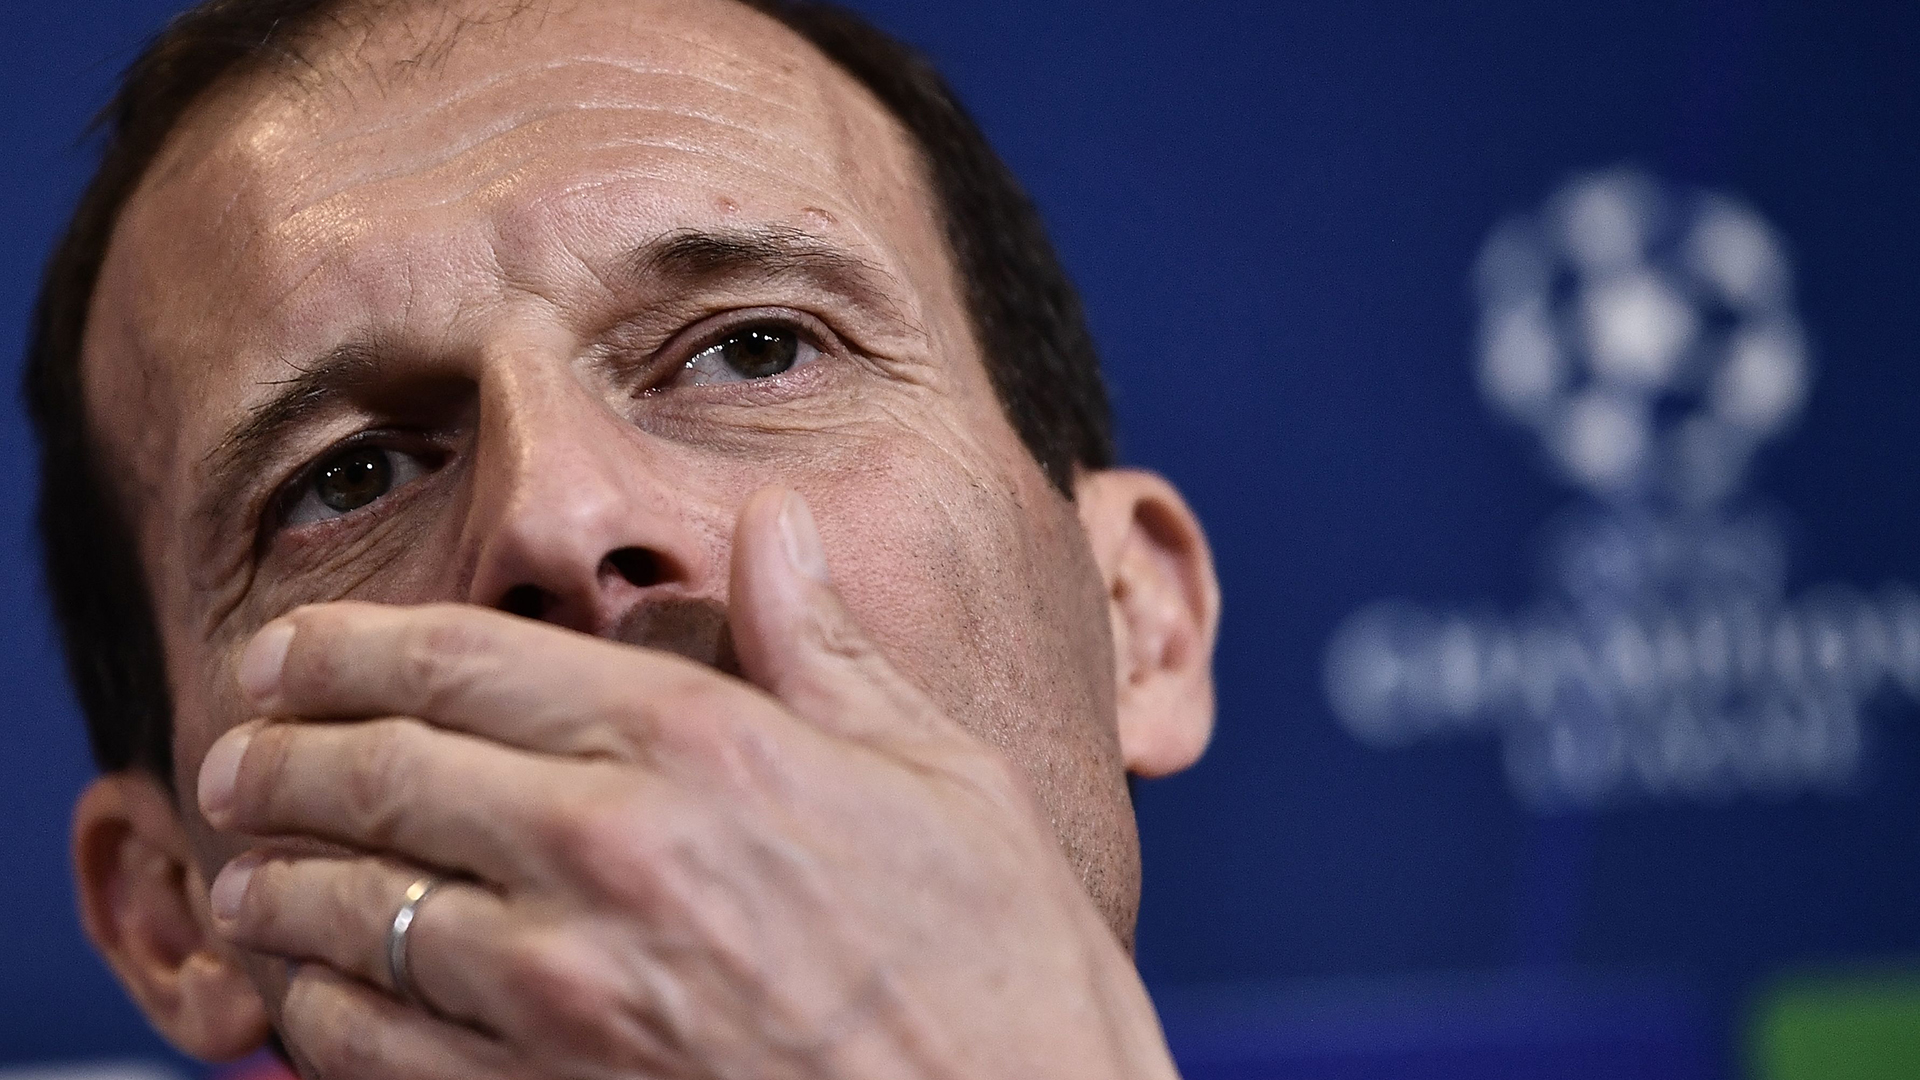 Allegri will not coach Juventus next season, club announces